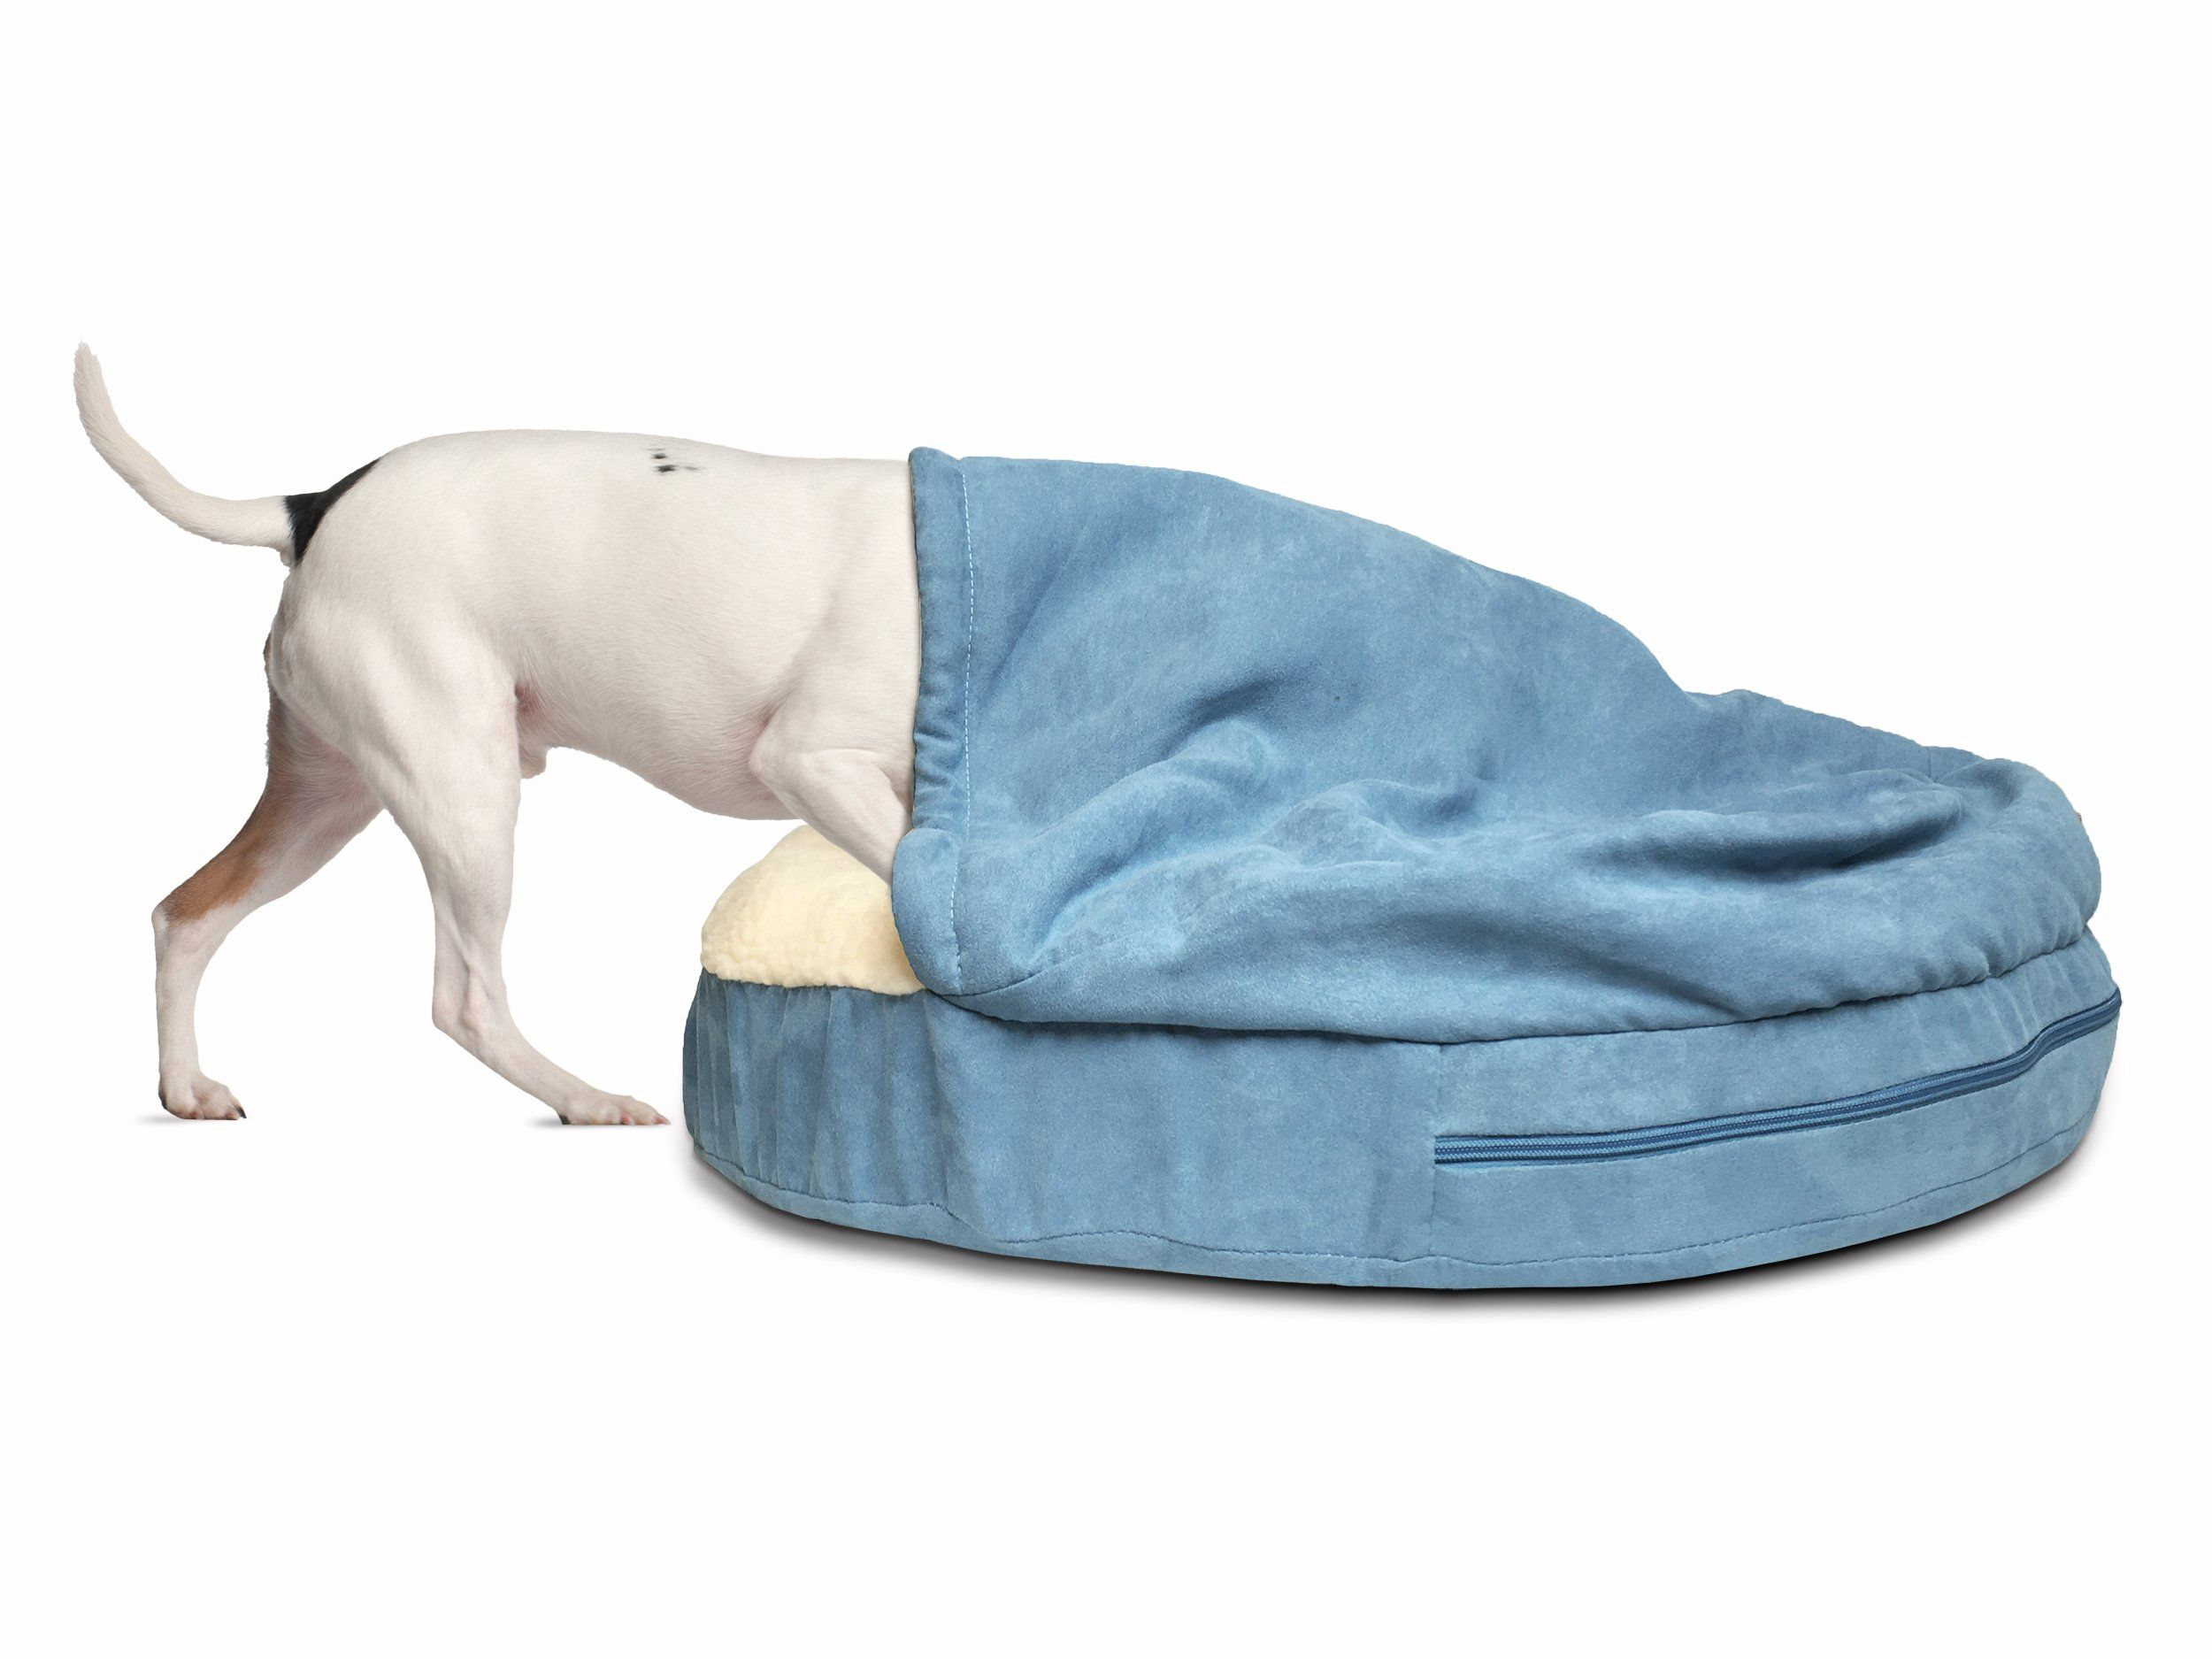 Furhaven Pet Dog Bed Orthopedic Round Faux Sheepskin Snuggery Burrow Pet Bed For Dogs And Cats Blue 26inch Co Mattress Dog Bed Hooded Dog Bed Dog Pet Beds